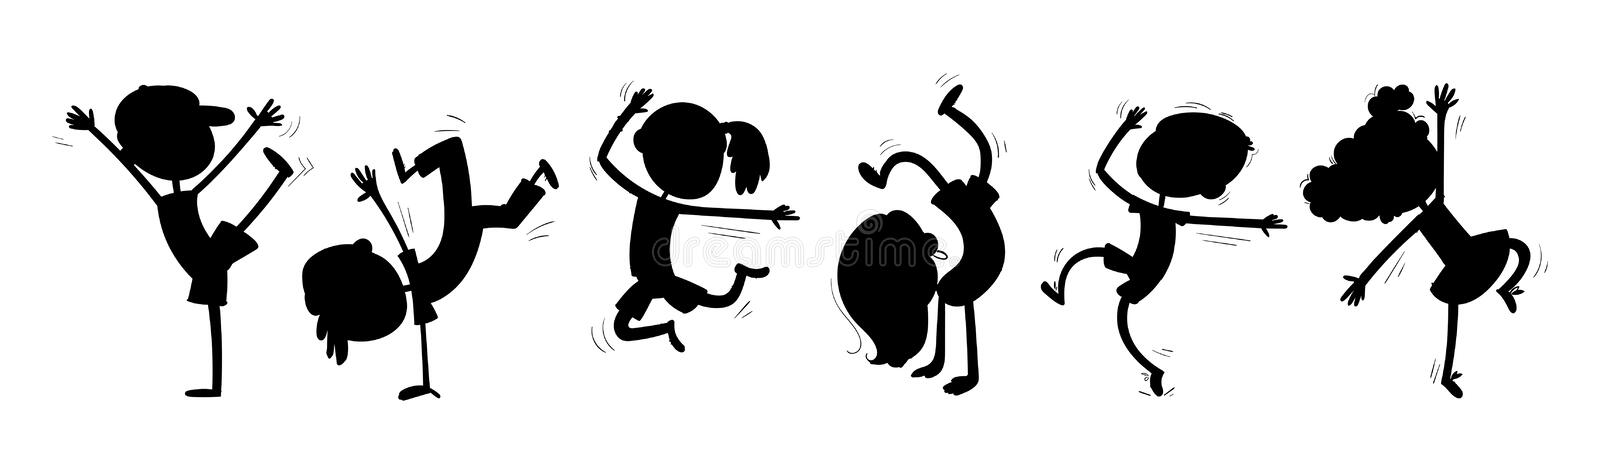 Silhouettes of dancing children. Funny cartoon character. Vector illustration. Isolated on white background royalty free illustration